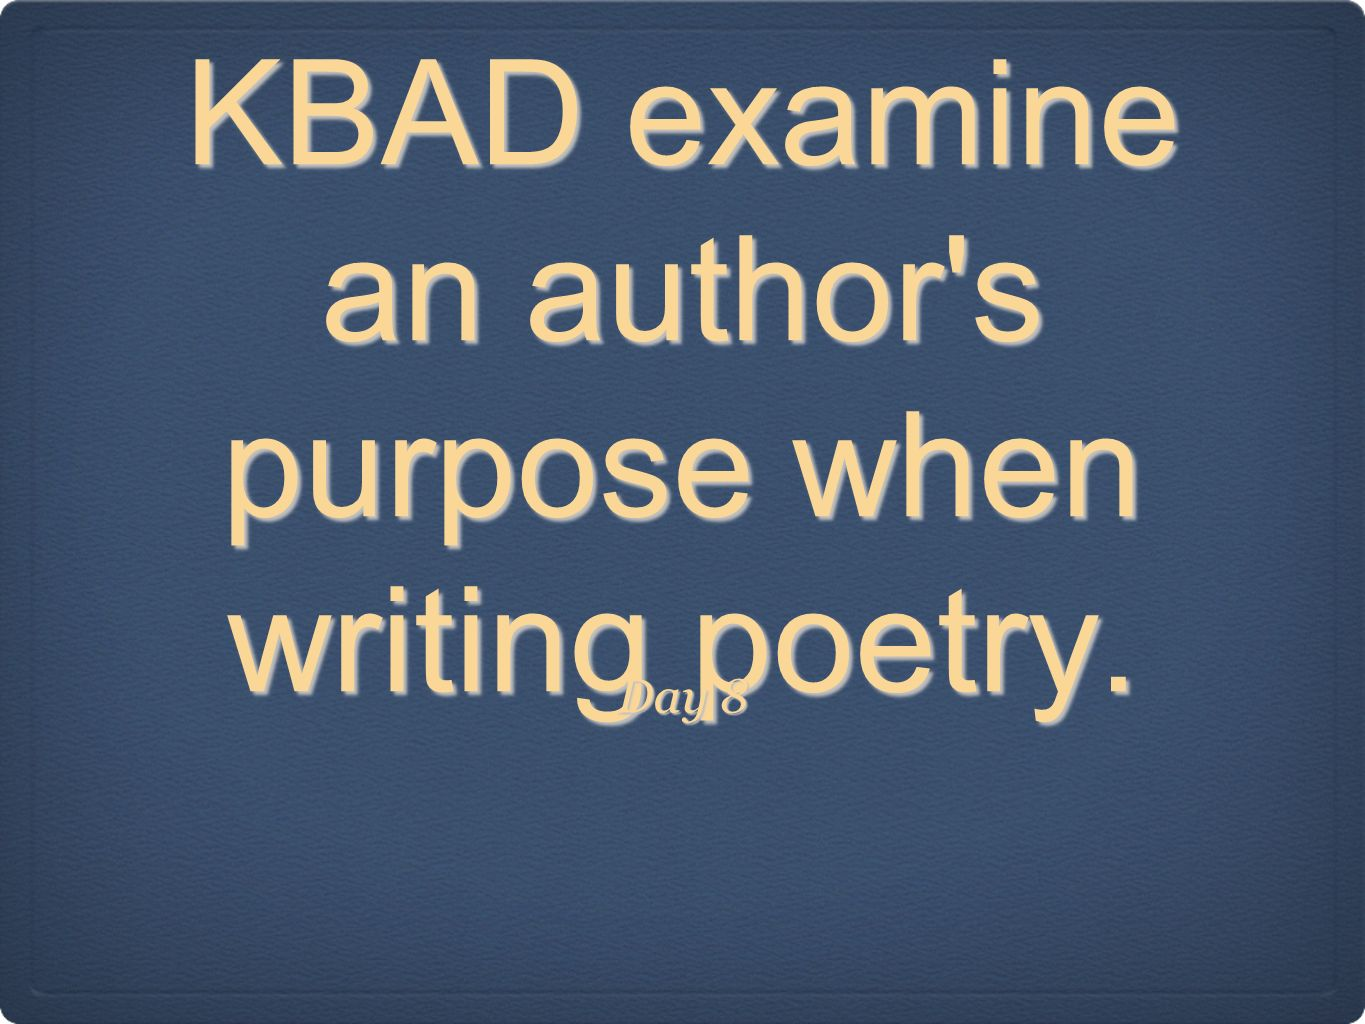 KBAD examine an author s purpose when writing poetry.